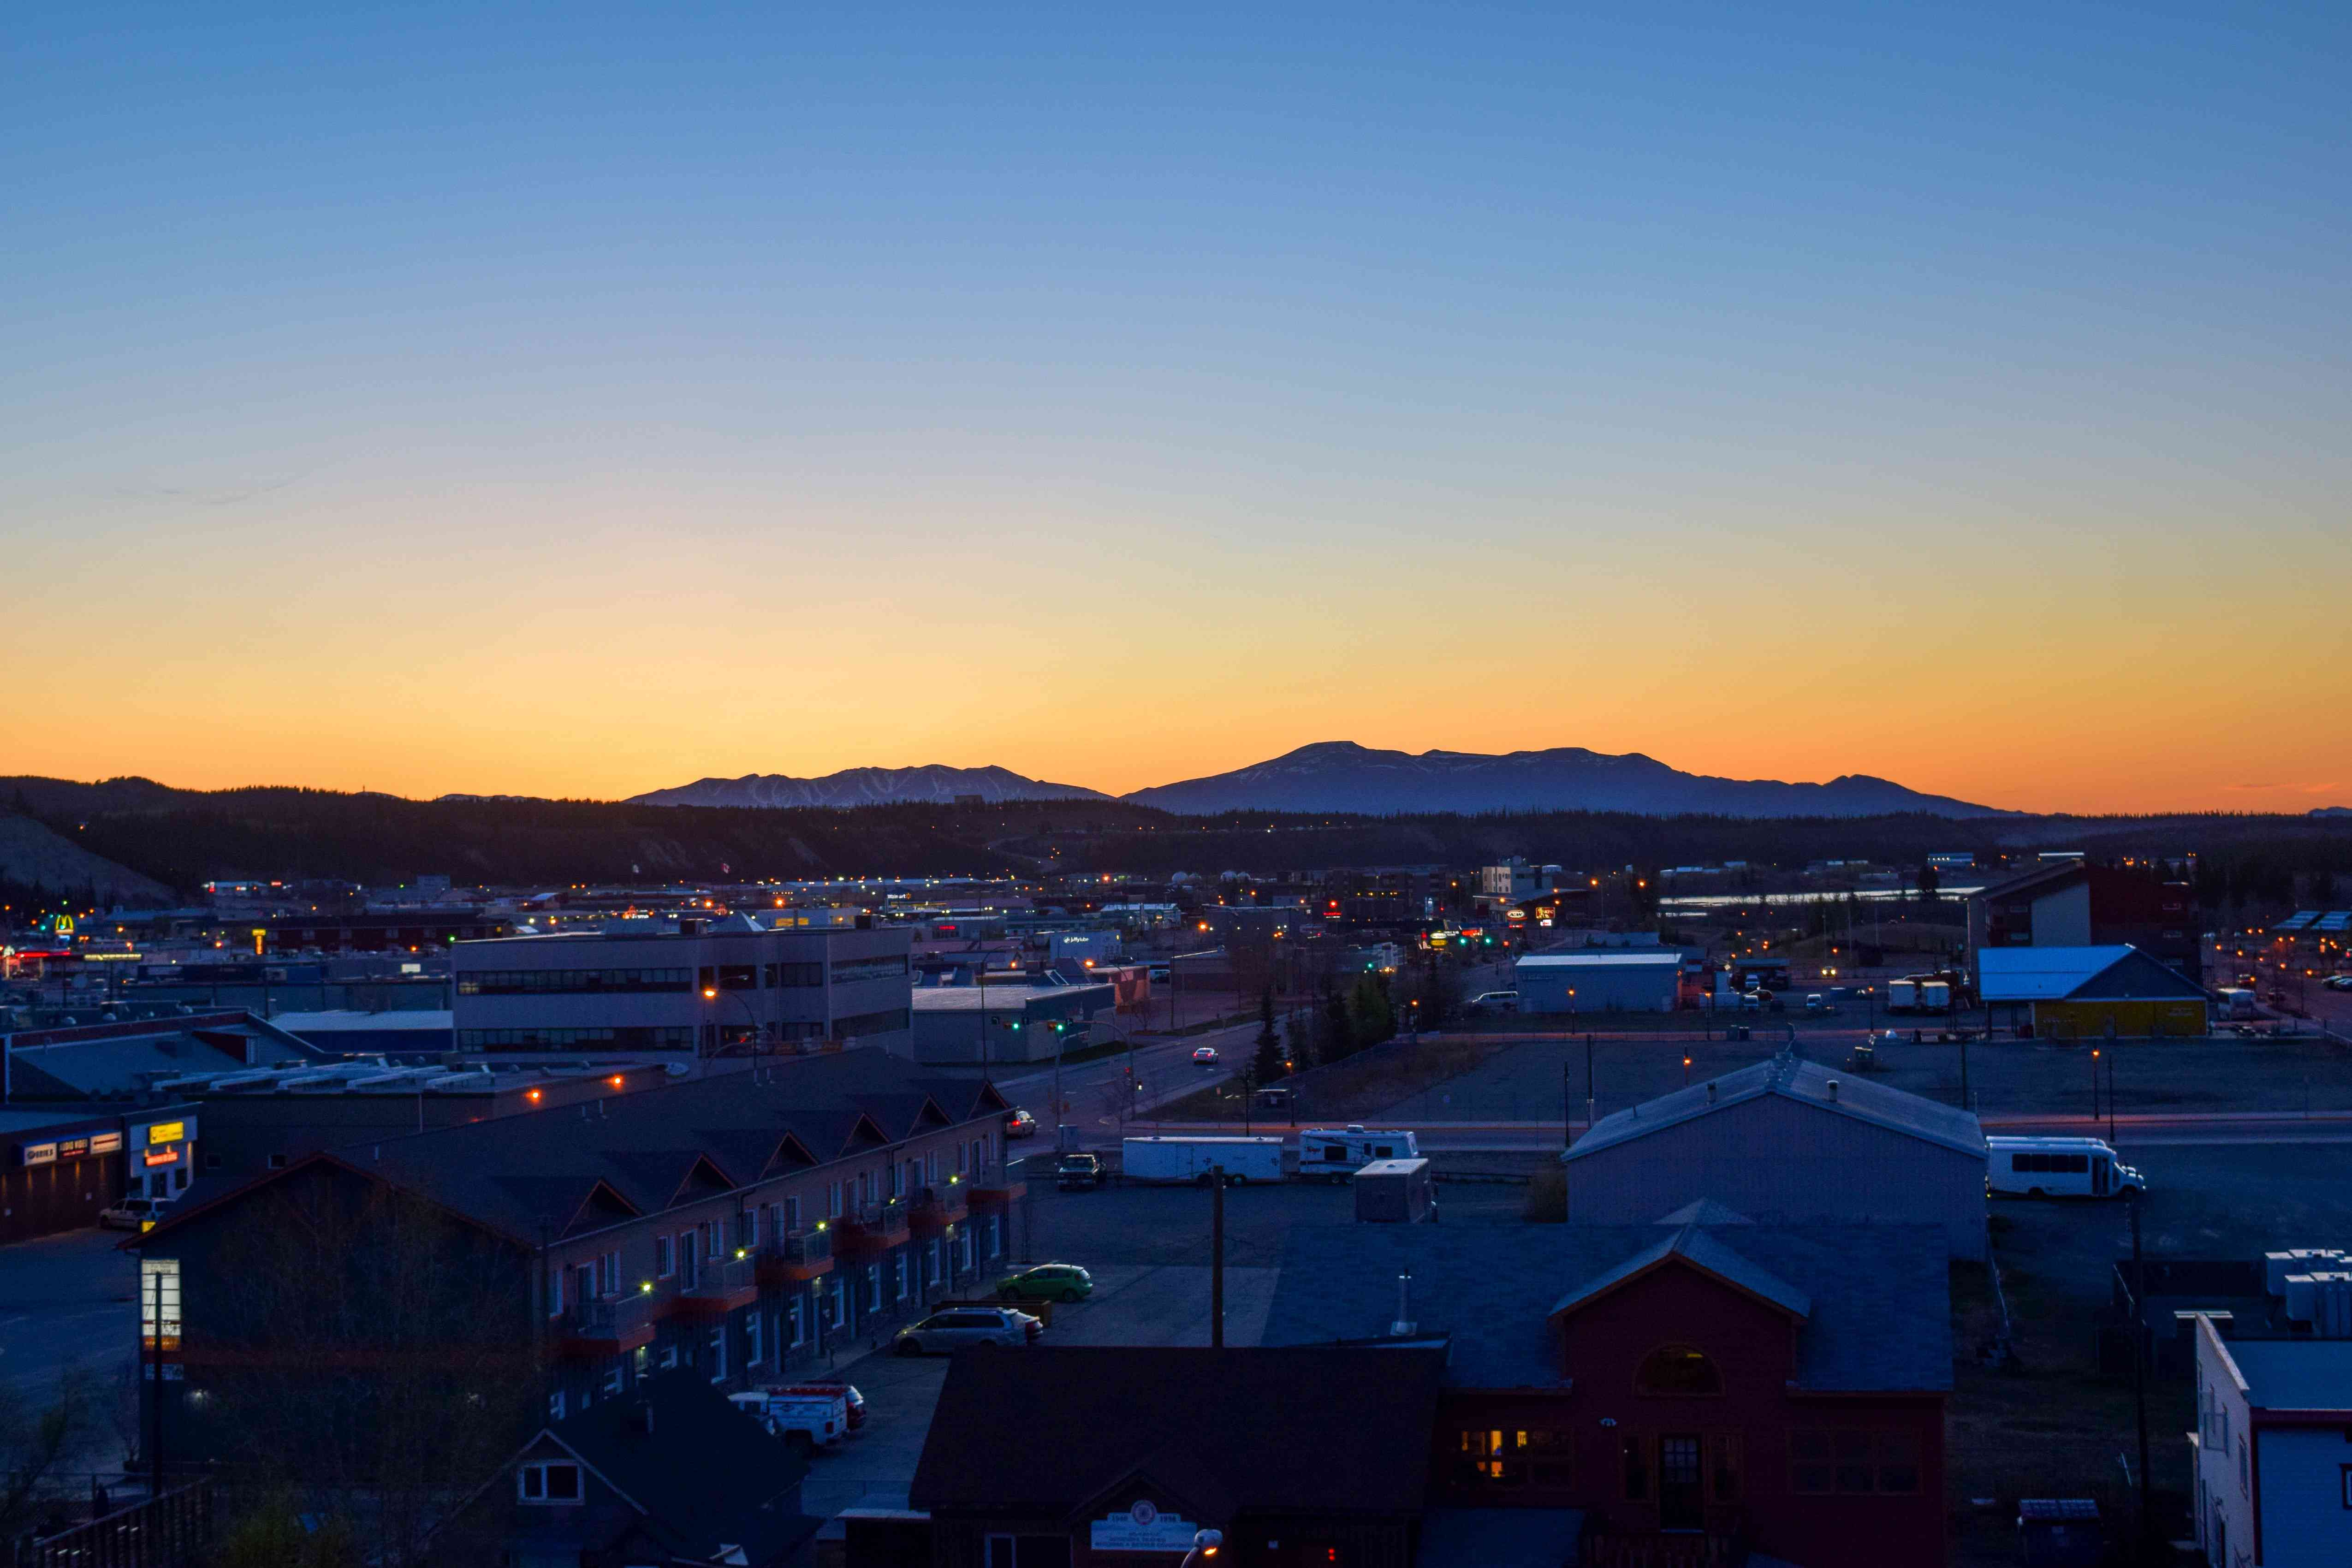 A long summer's midnight sunset over Whitehorse in Yukon